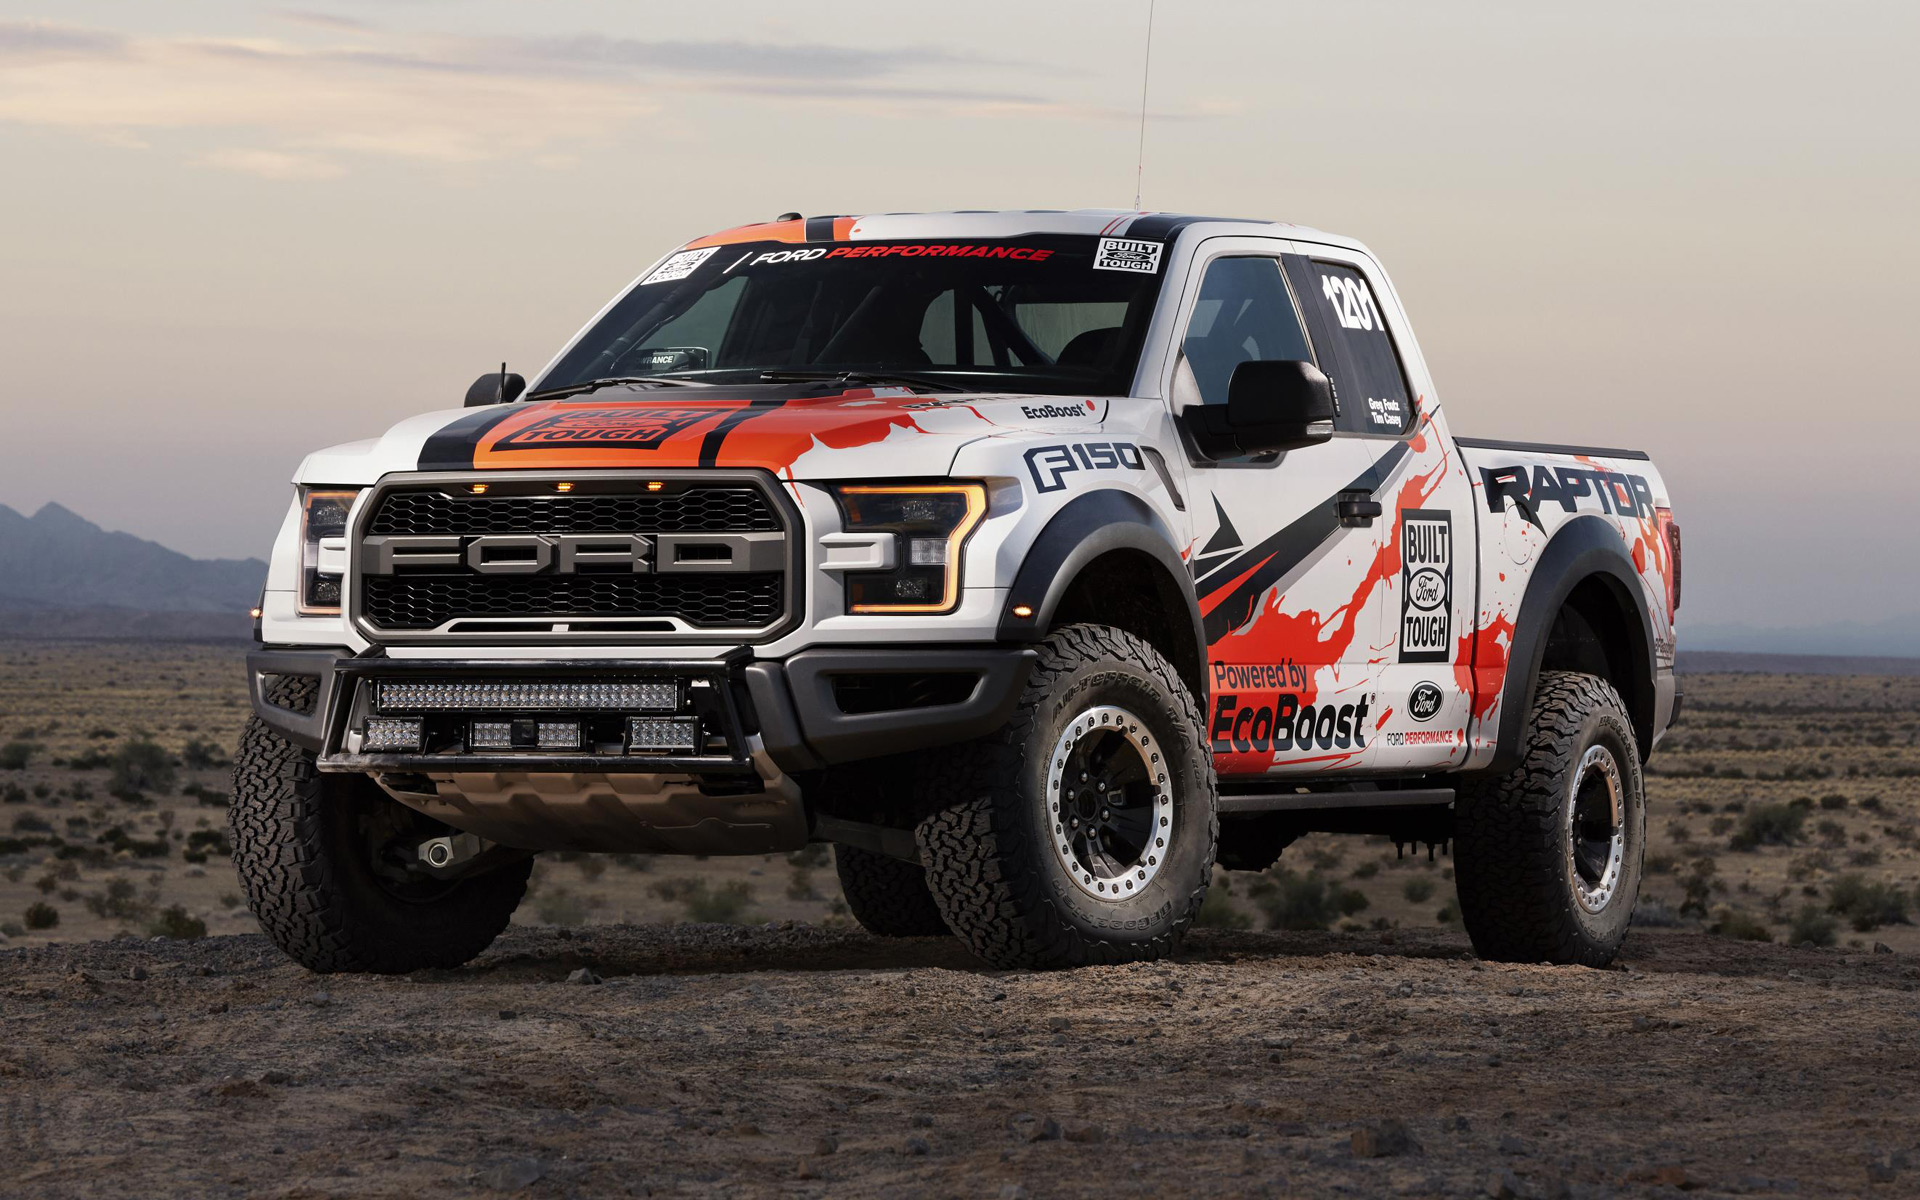 2020 Ford F 150 Raptor | 2017, 2018, 2019 Ford Price, Release Date, Reviews